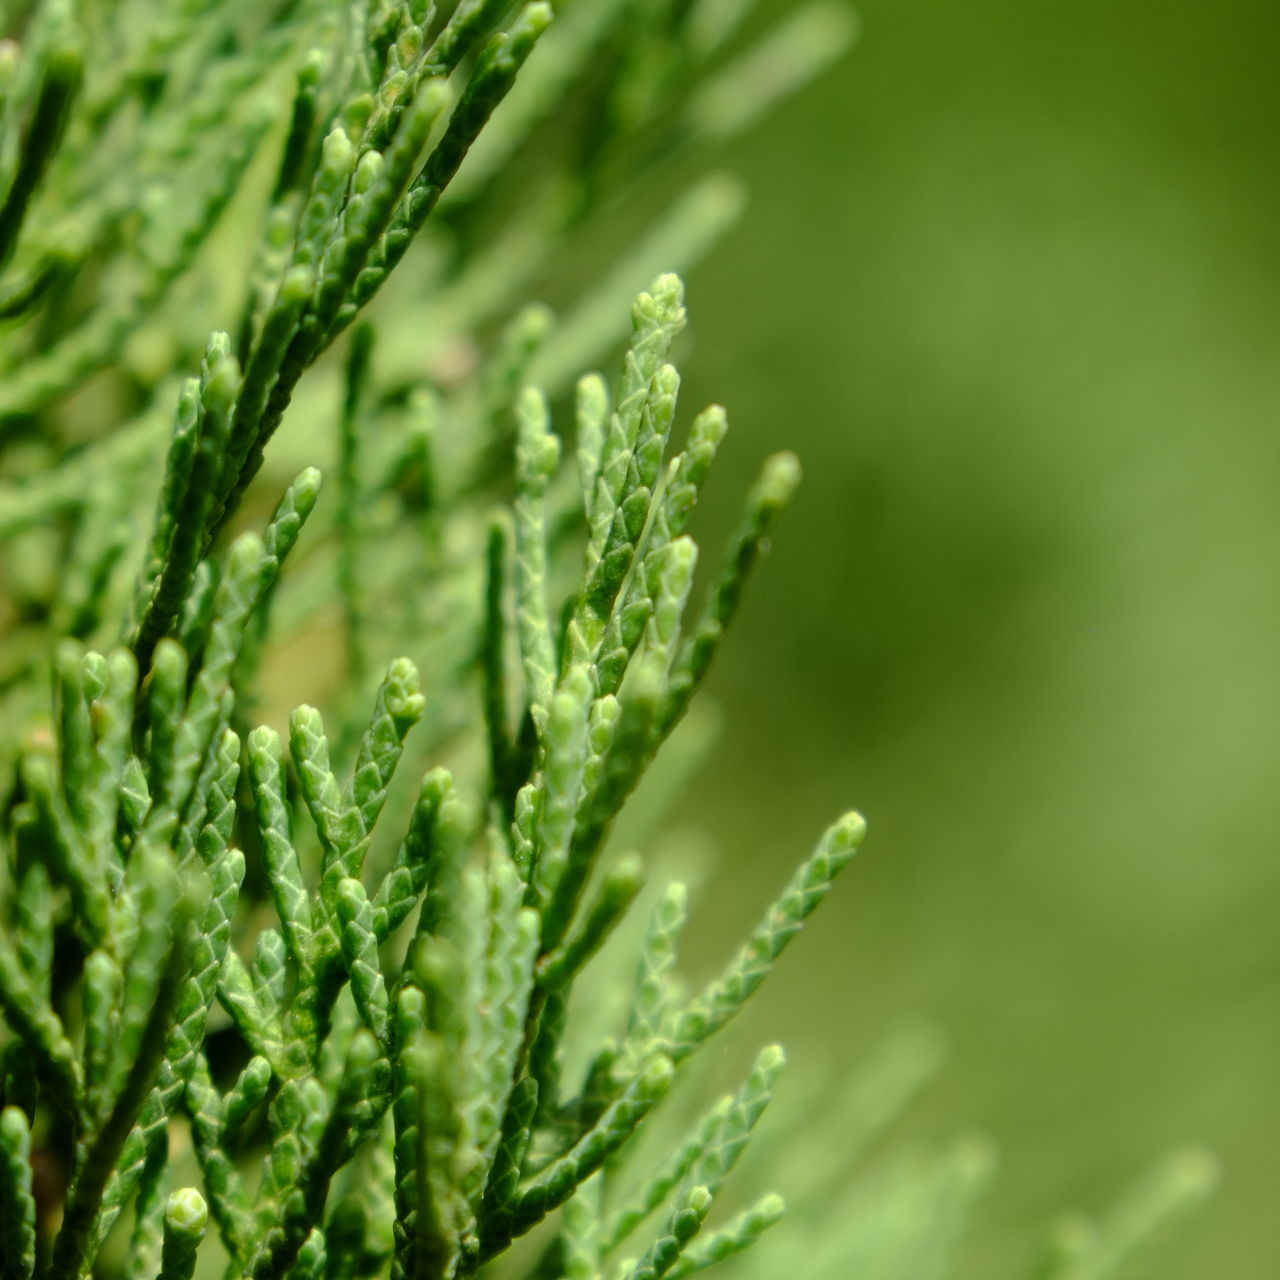 green color, growth, nature, plant, no people, freshness, backgrounds, close-up, beauty in nature, day, outdoors